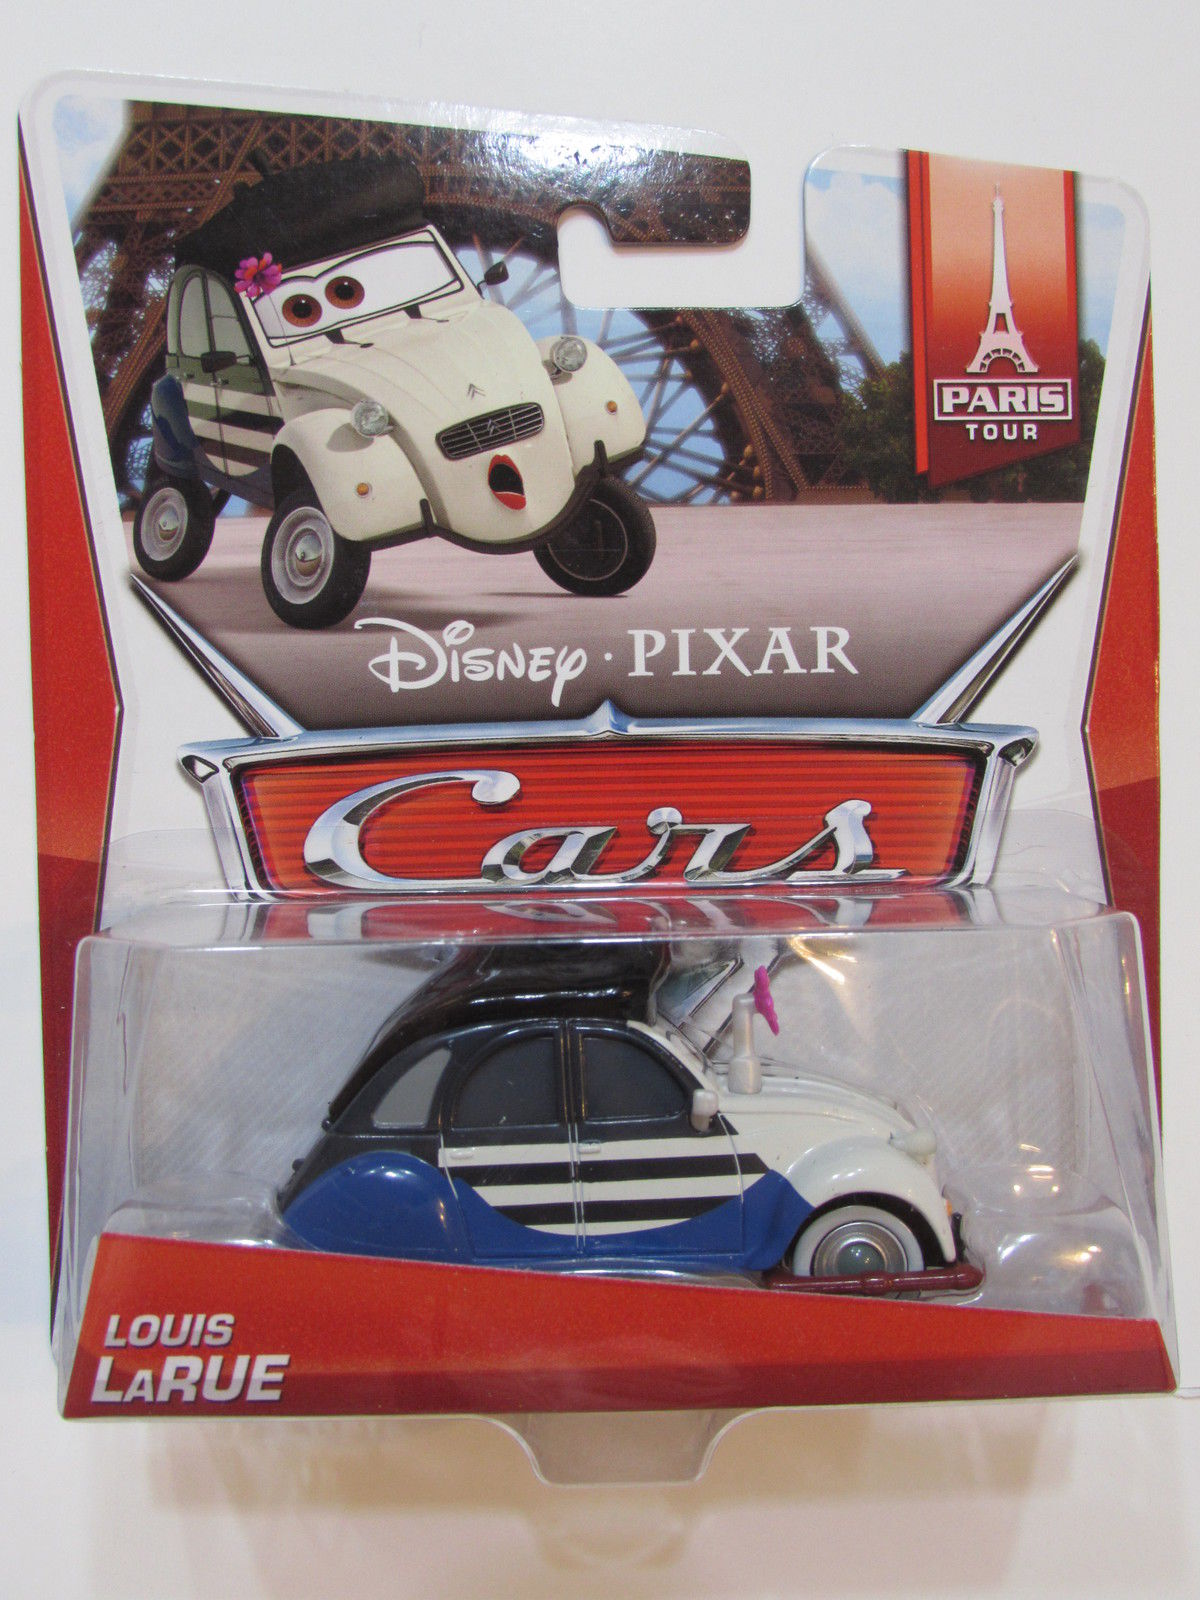 DISNEY PIXAR CARS PARIS TOUR LOUIS LARUE